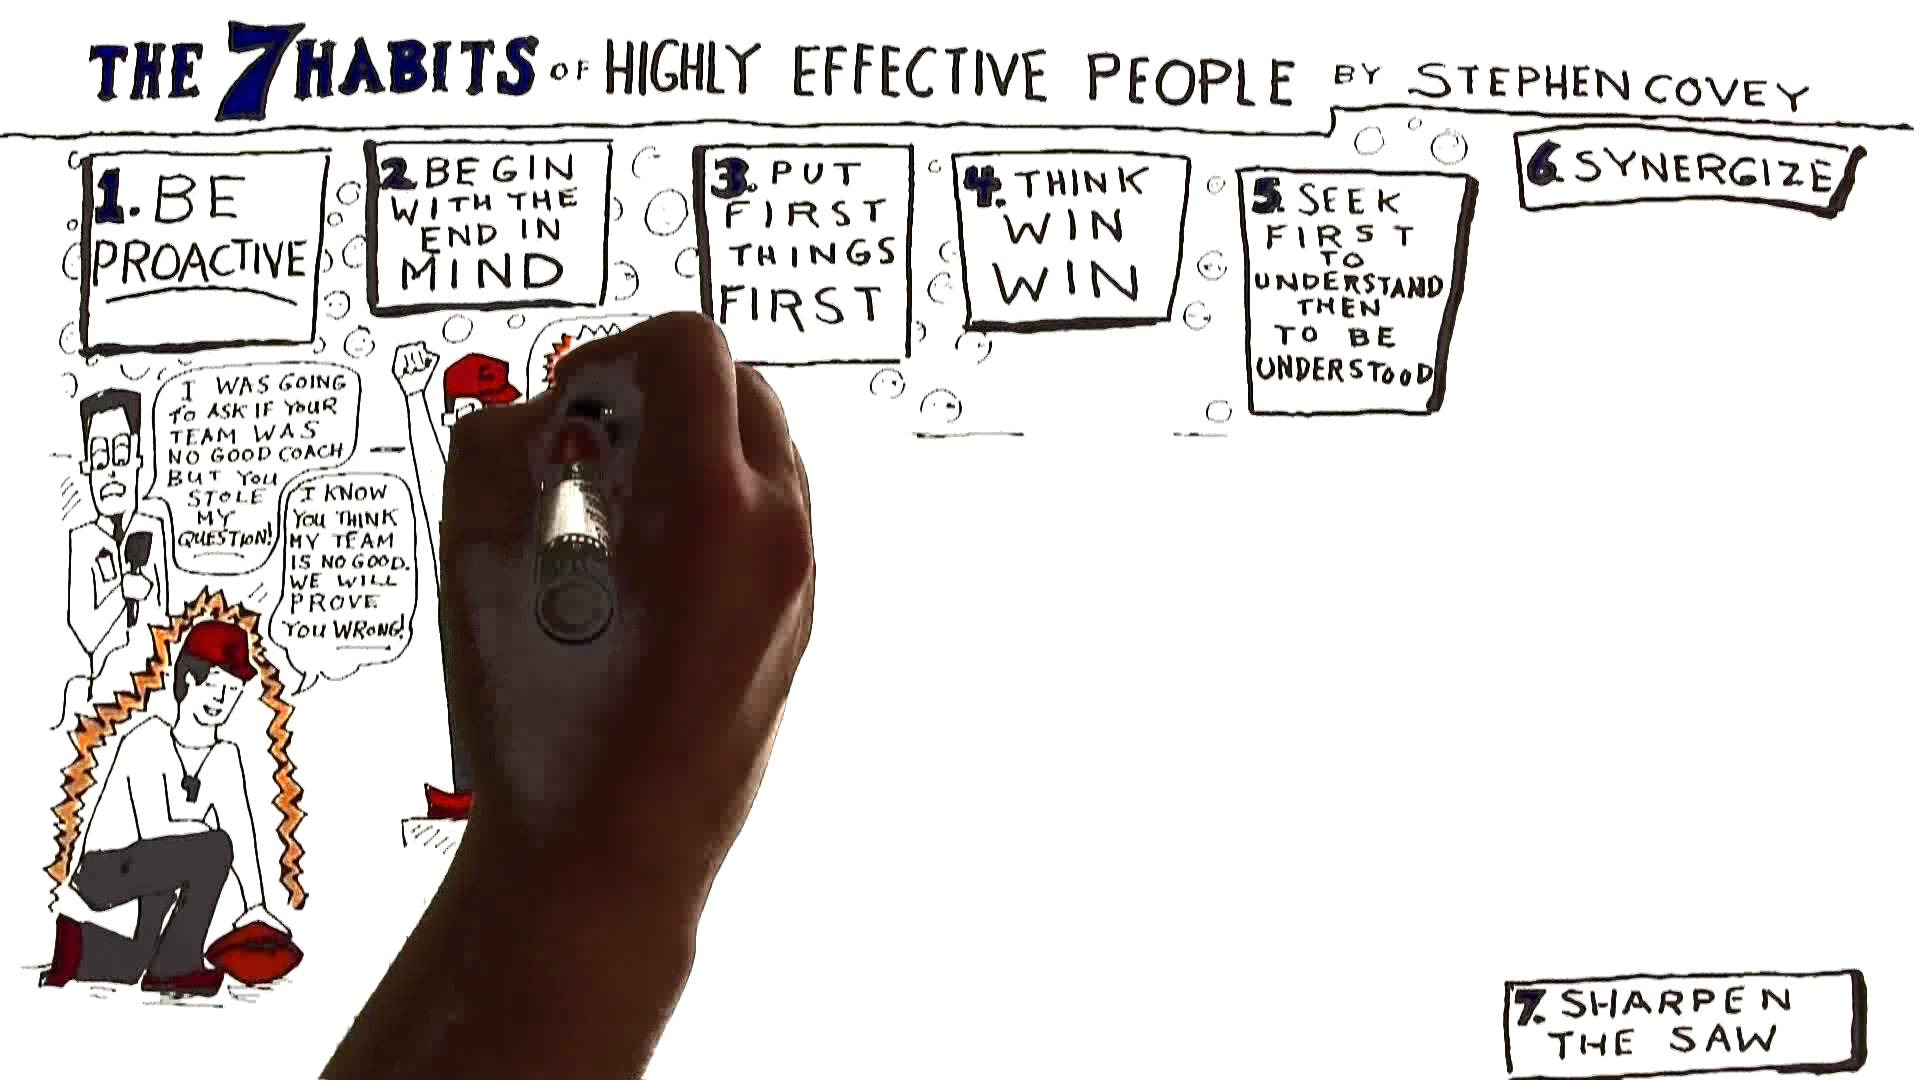 Video Review: The 7 Habits of Highly Effective People